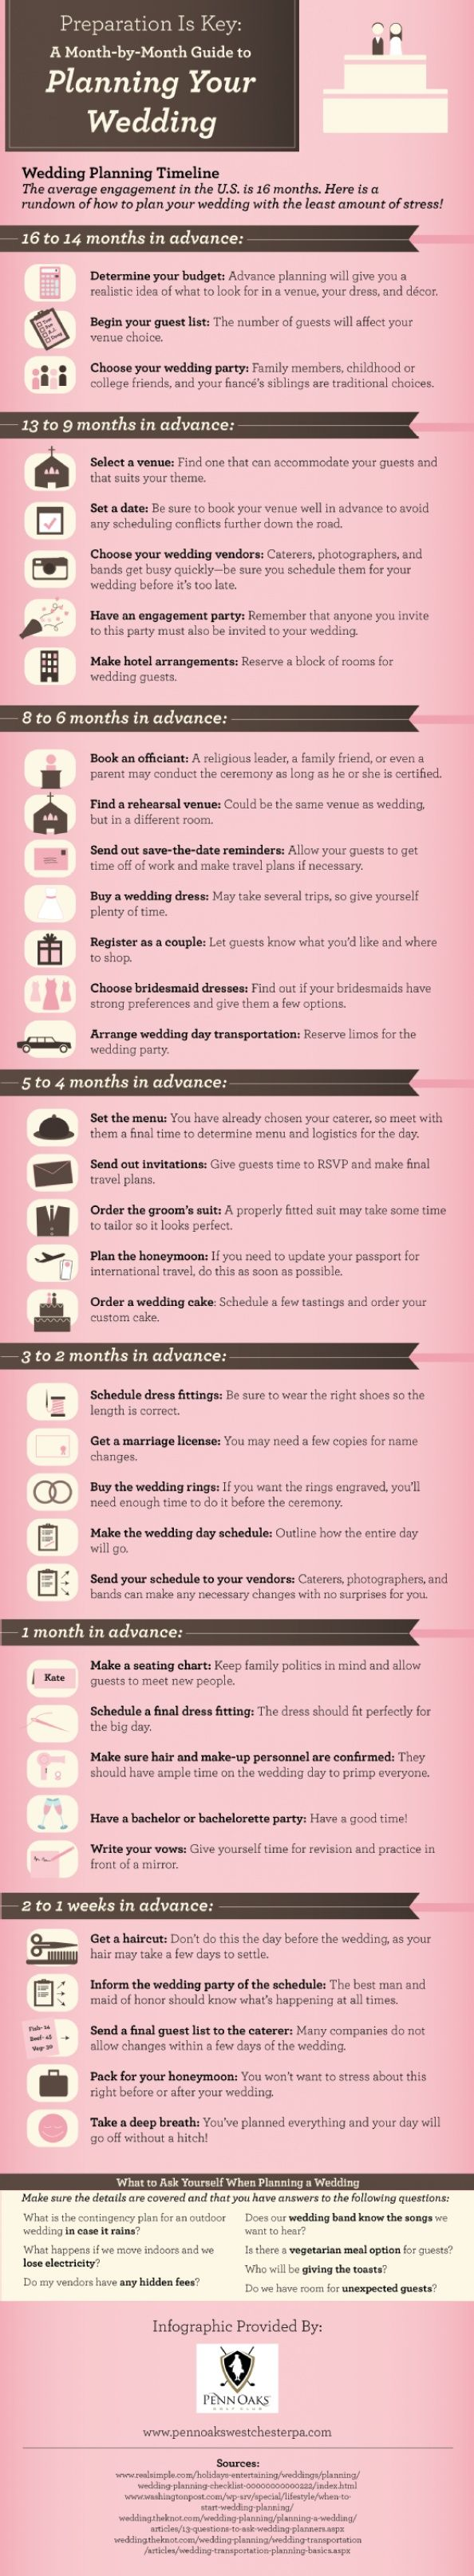 Preparation Is Key: A Month-by-Month Guide to Planning Your Wedding.